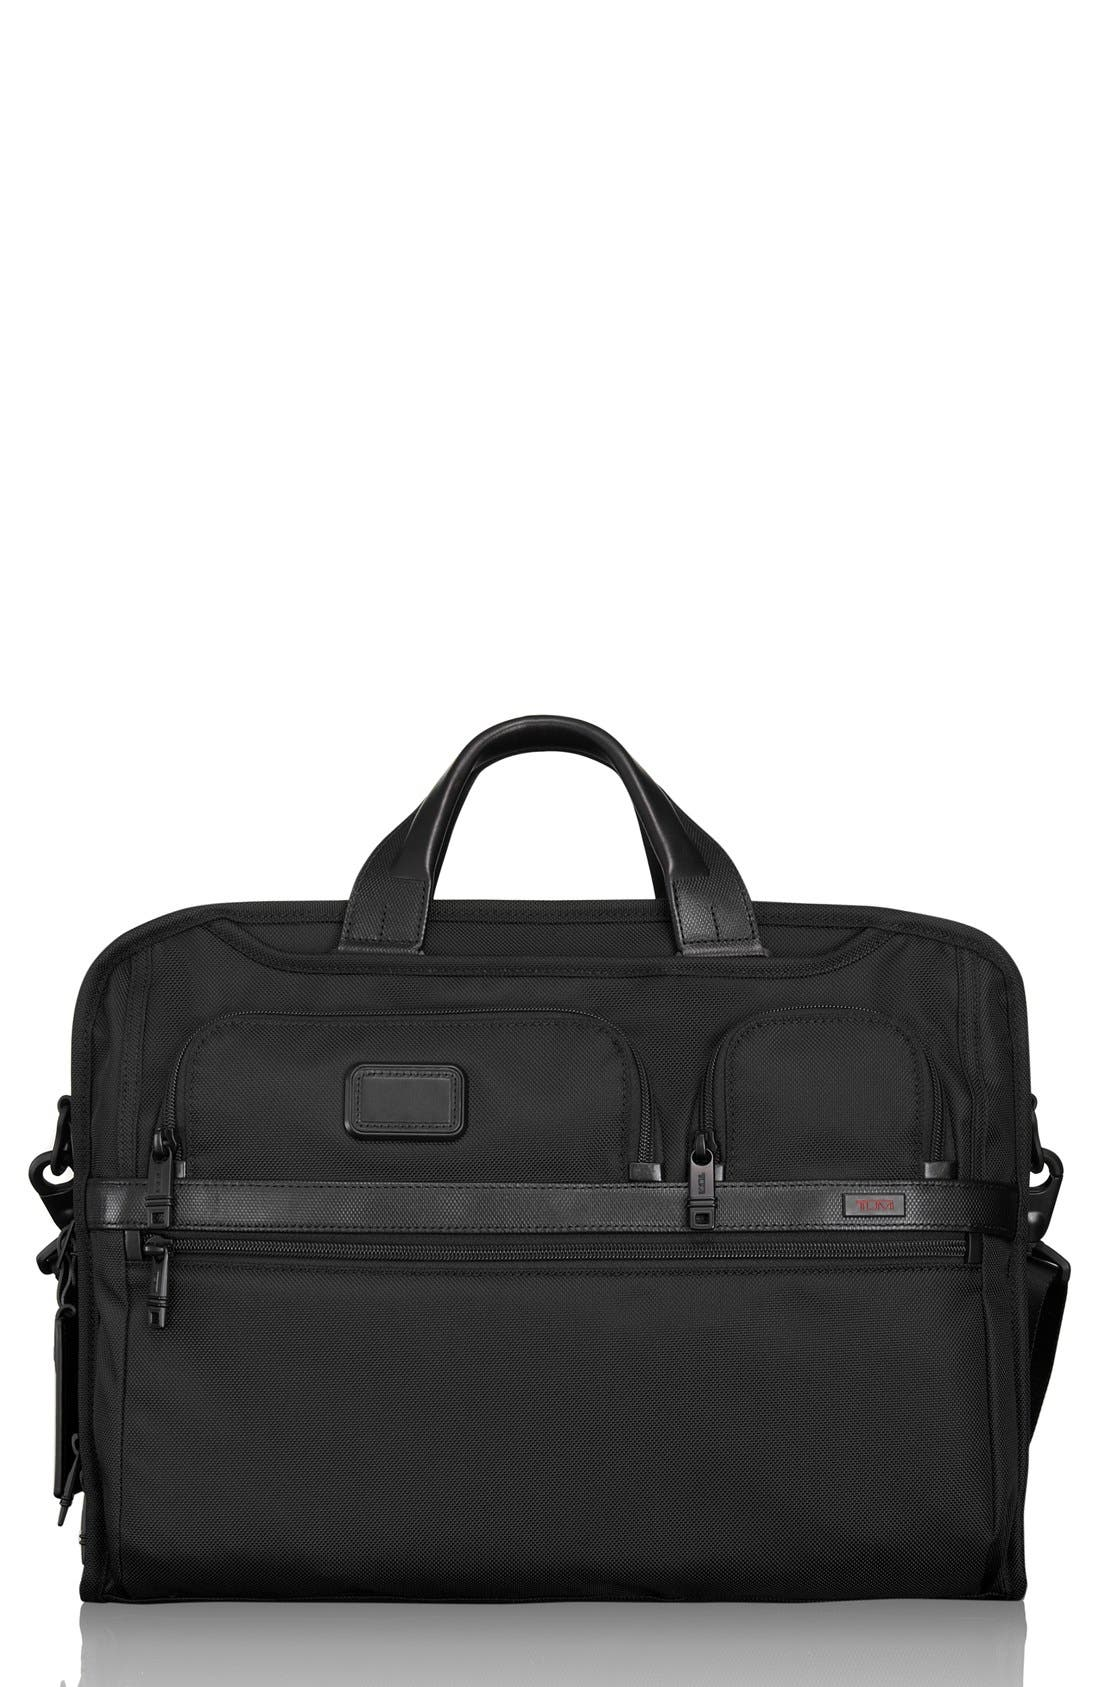 'Alpha 2' Laptop Briefcase with Tumi ID Lock